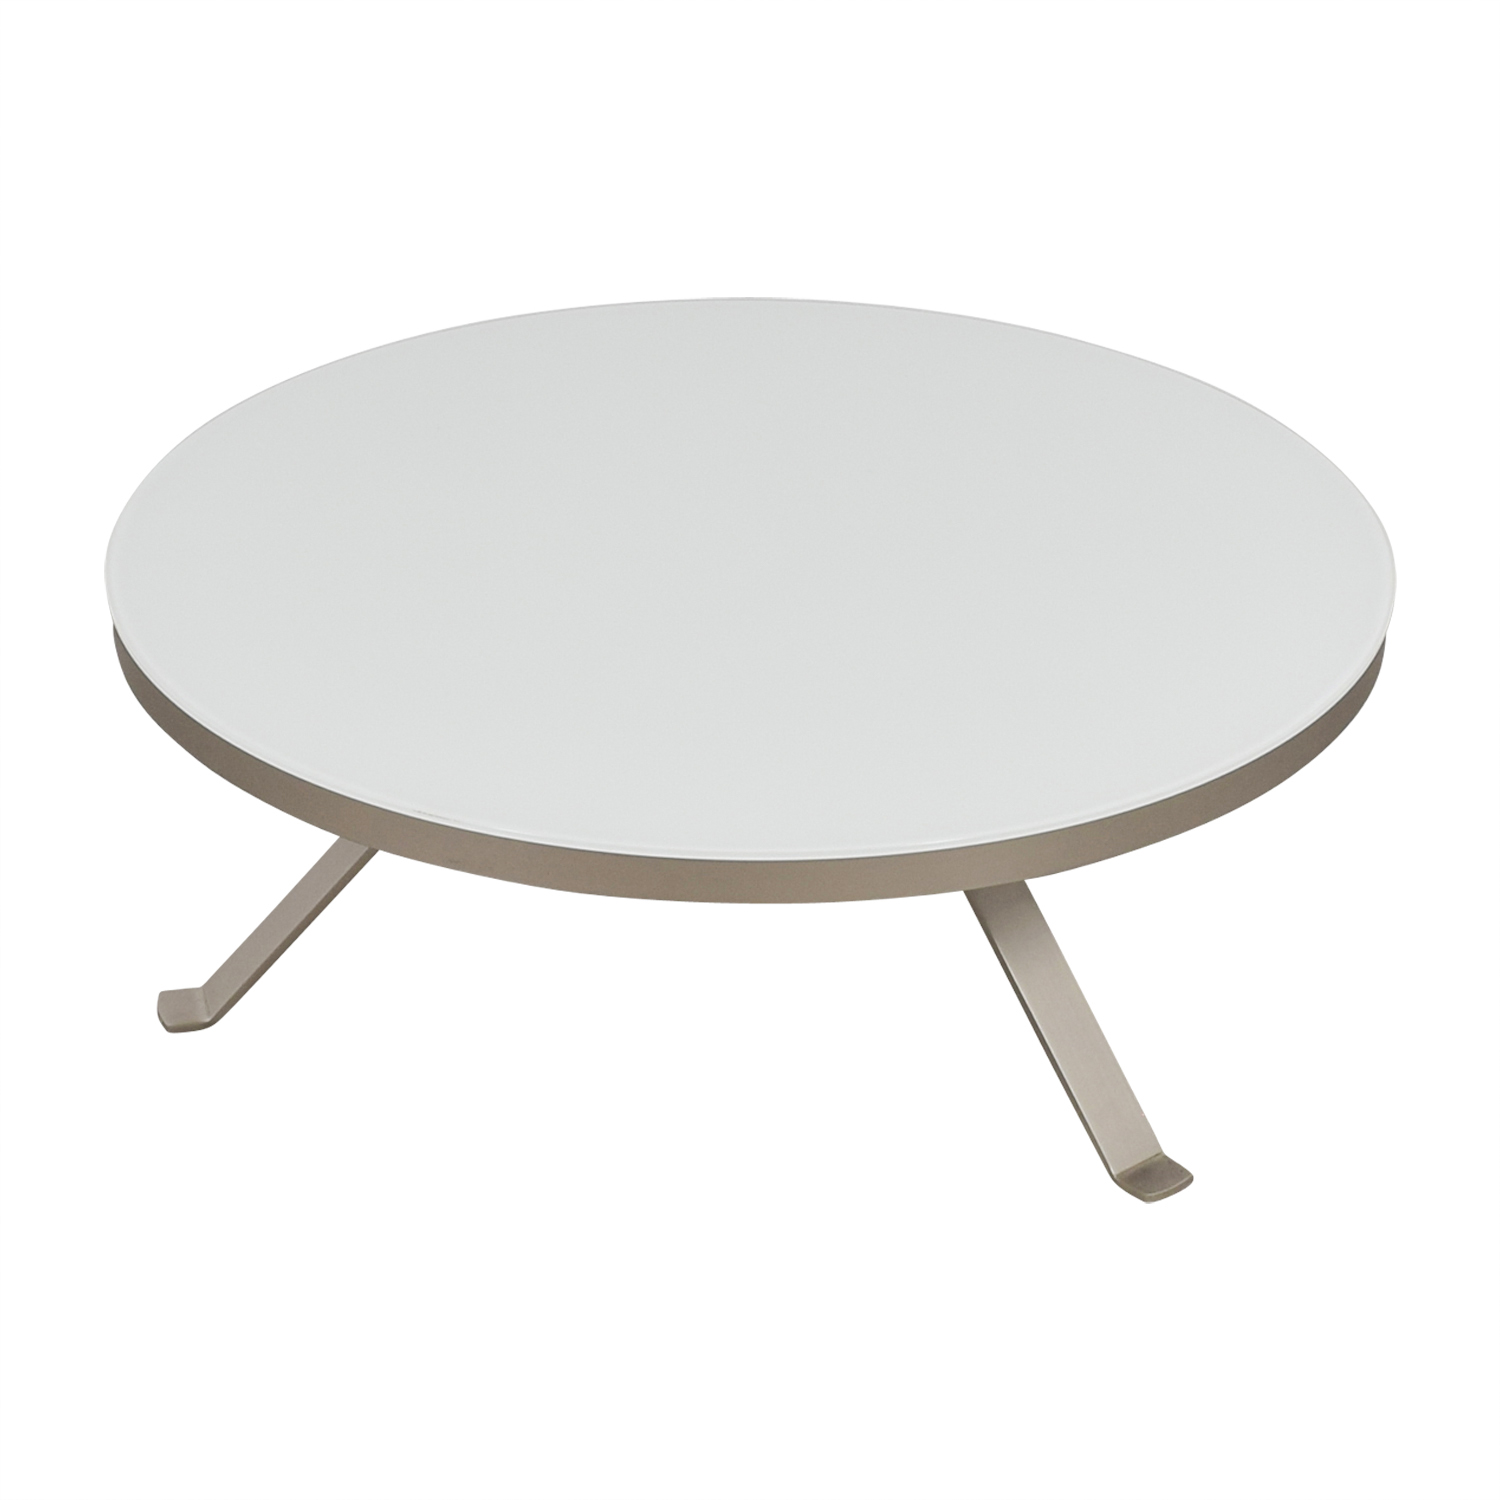 Bo Concept Bo Concept White Round Coffee Table nj